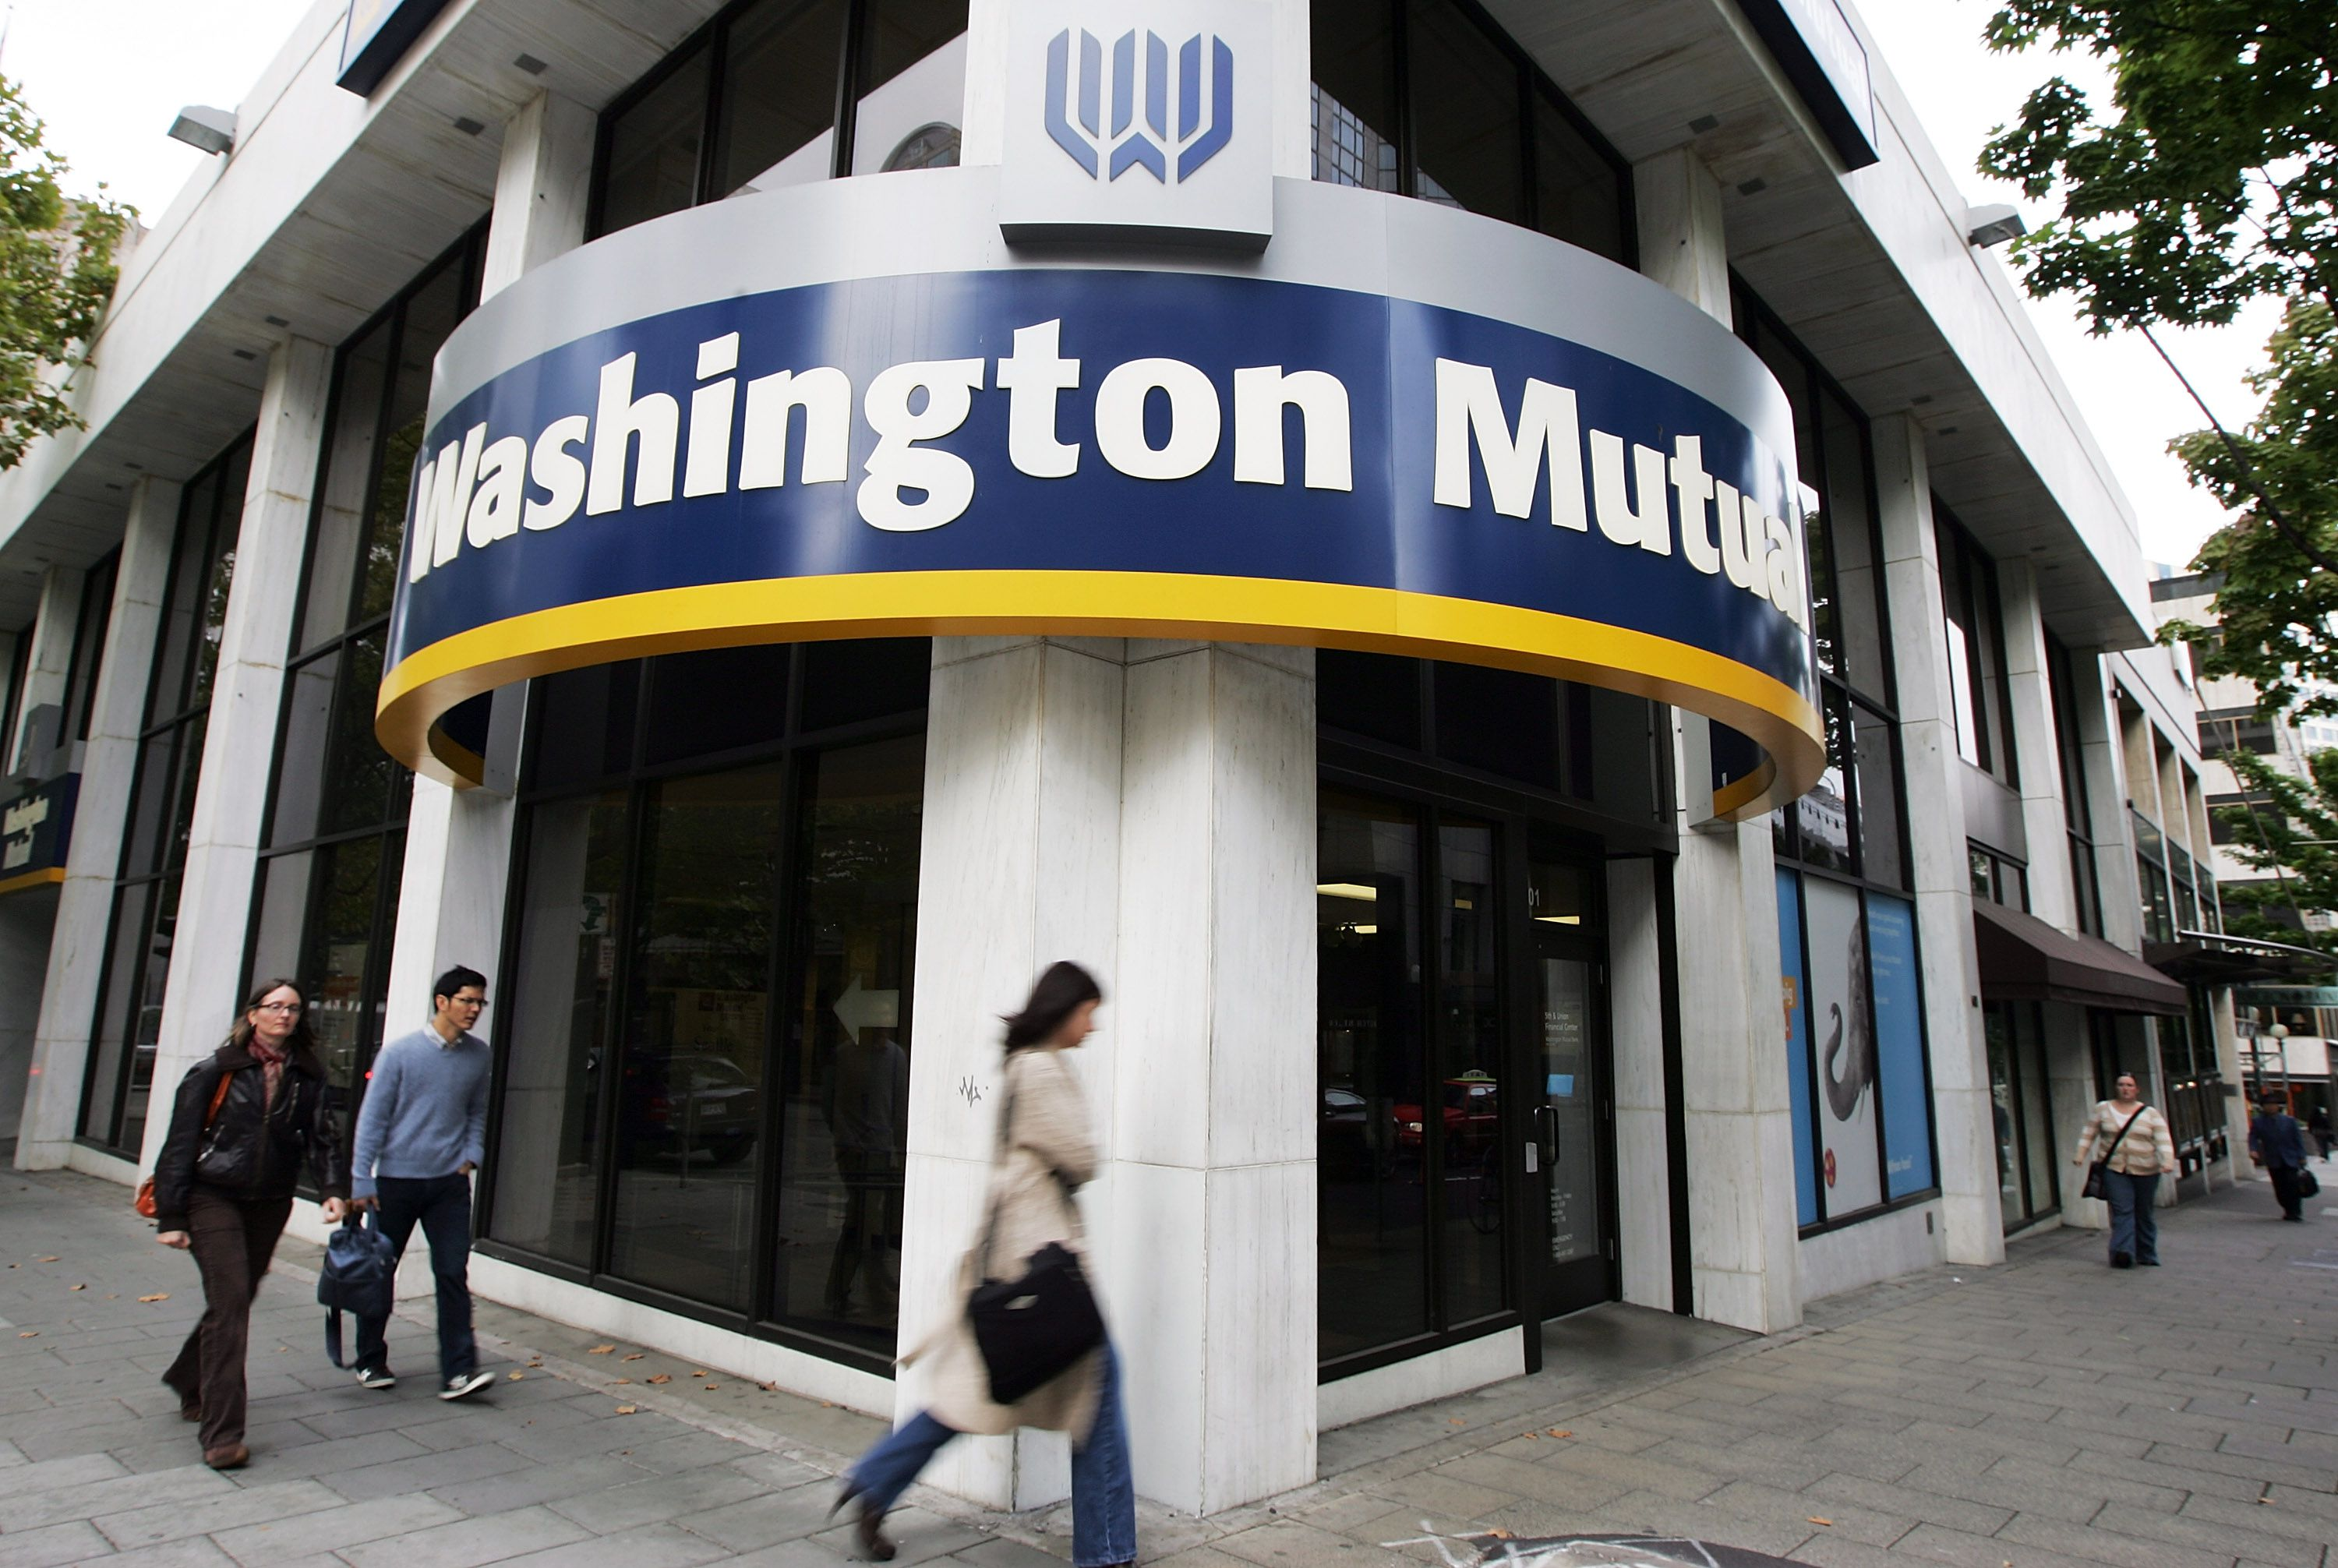 Washington Mutual Customer? Your Money is Now With Chase